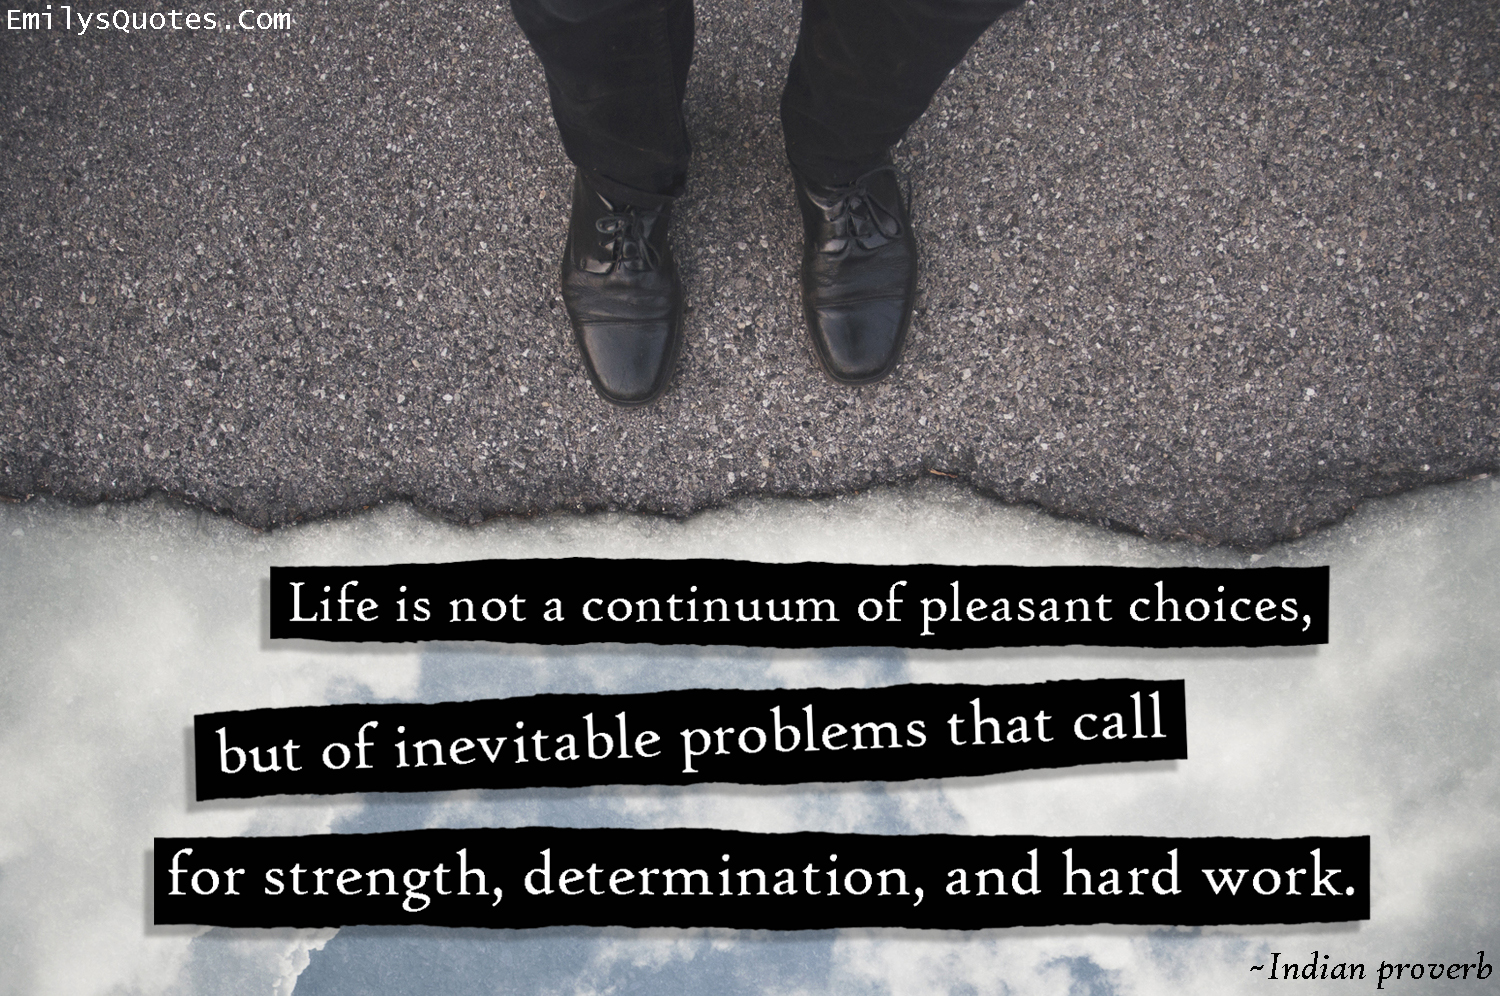 EmilysQuotes.Com - life, choices, problems, strength, determination, hard work, difference, understanding, Indian proverb